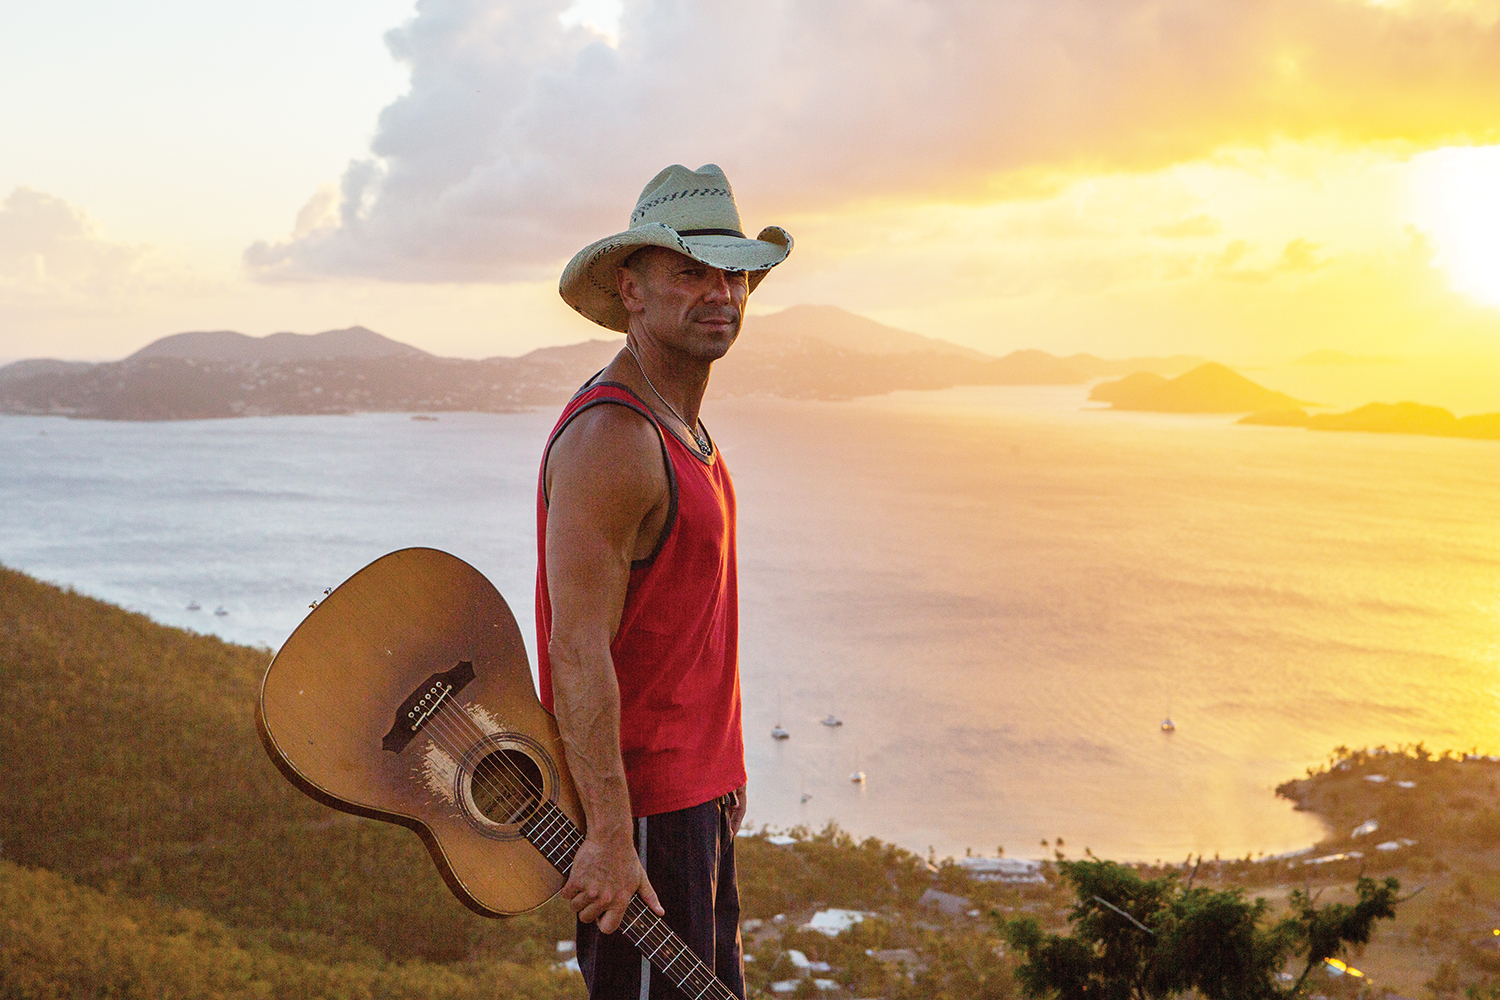 KENNY CHESNEY'S NO SHOES REEFS KICKS OFF 2020